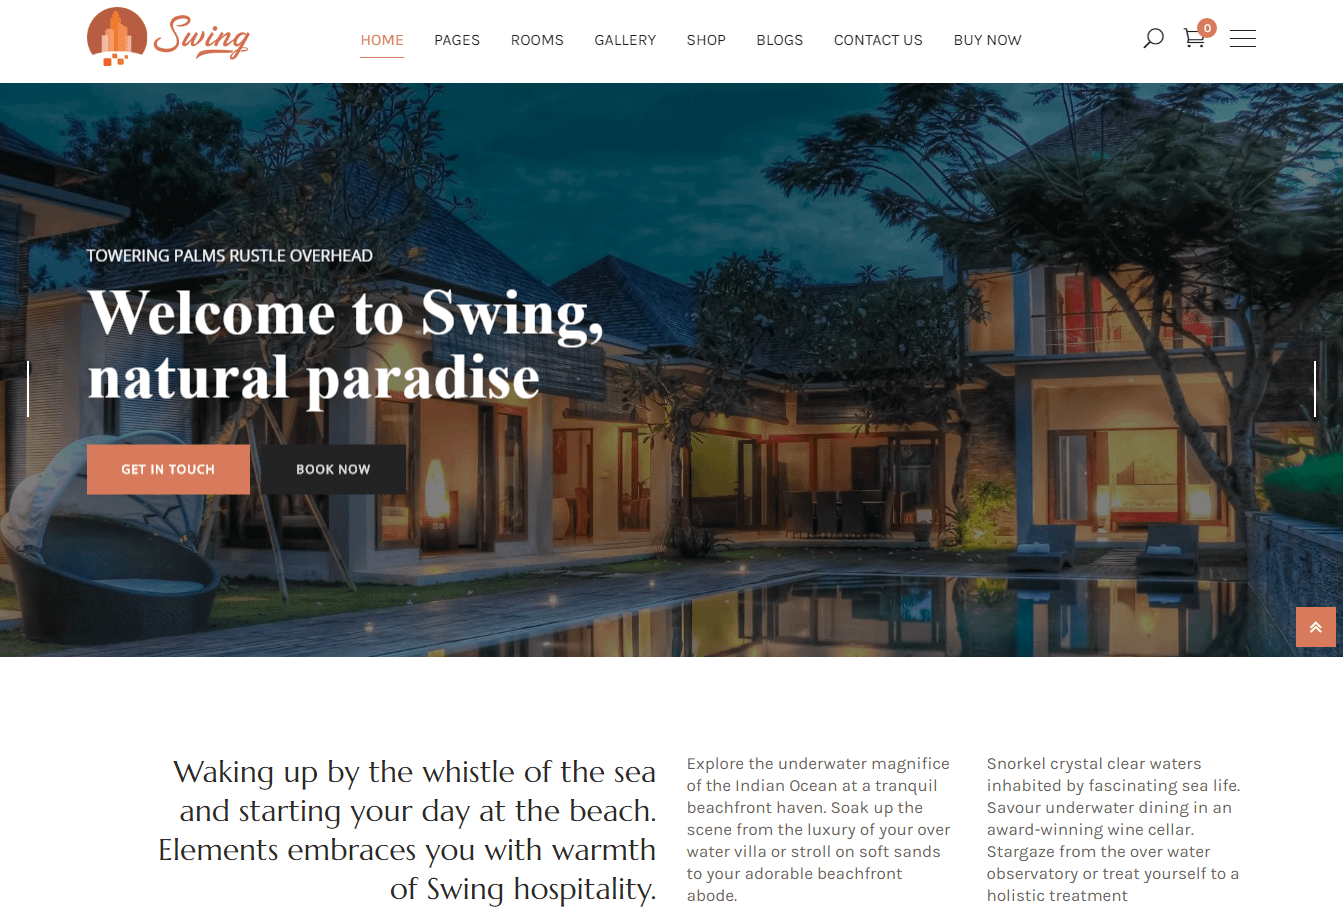 Swing - Resort and Hotel WordPress Theme